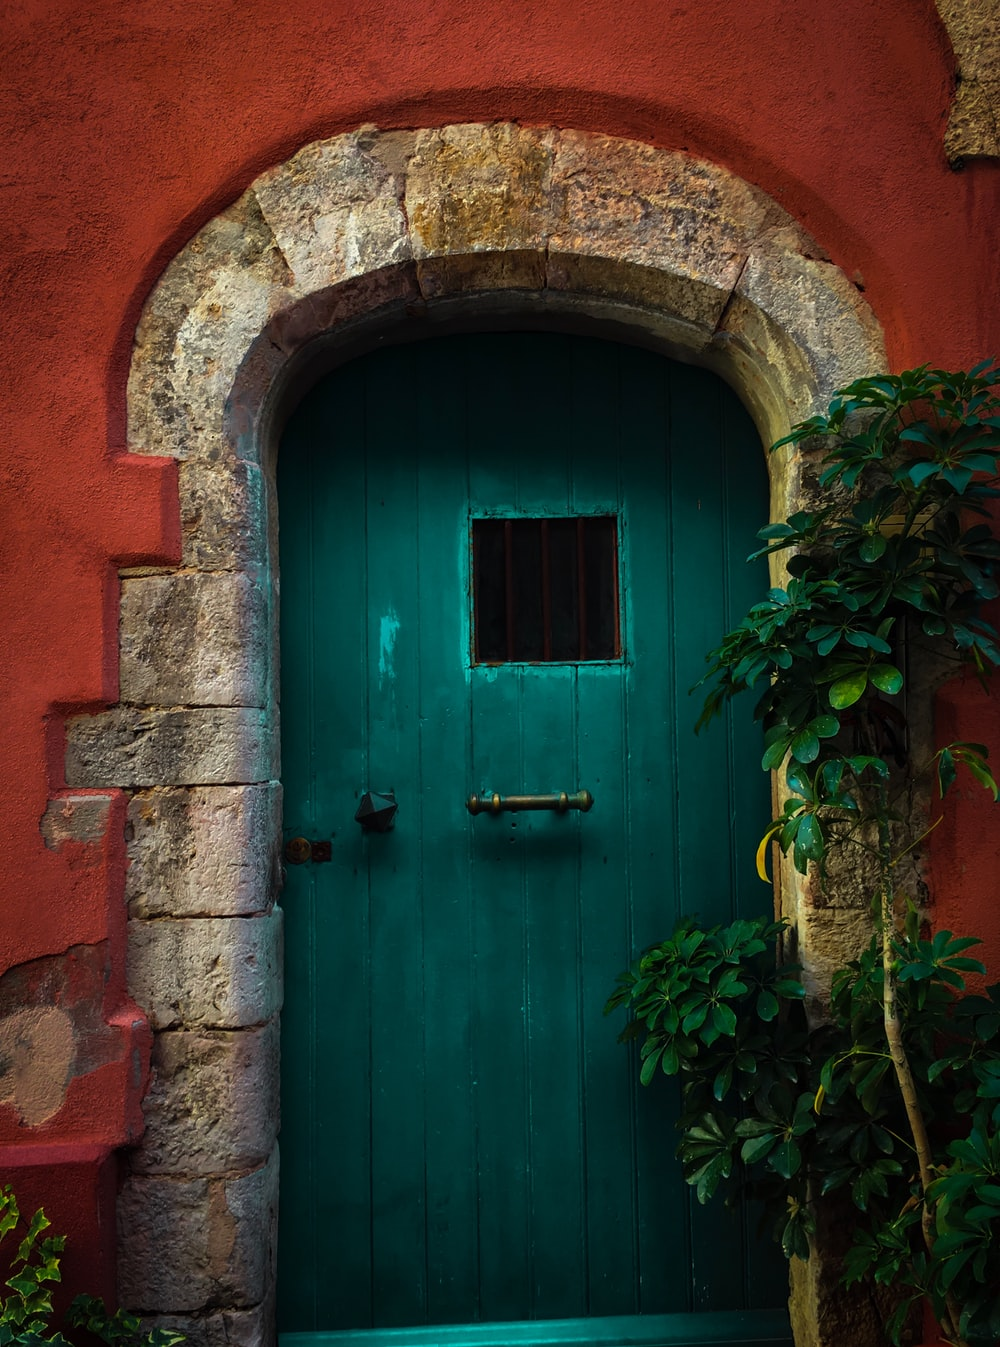 green door on a red concrete house